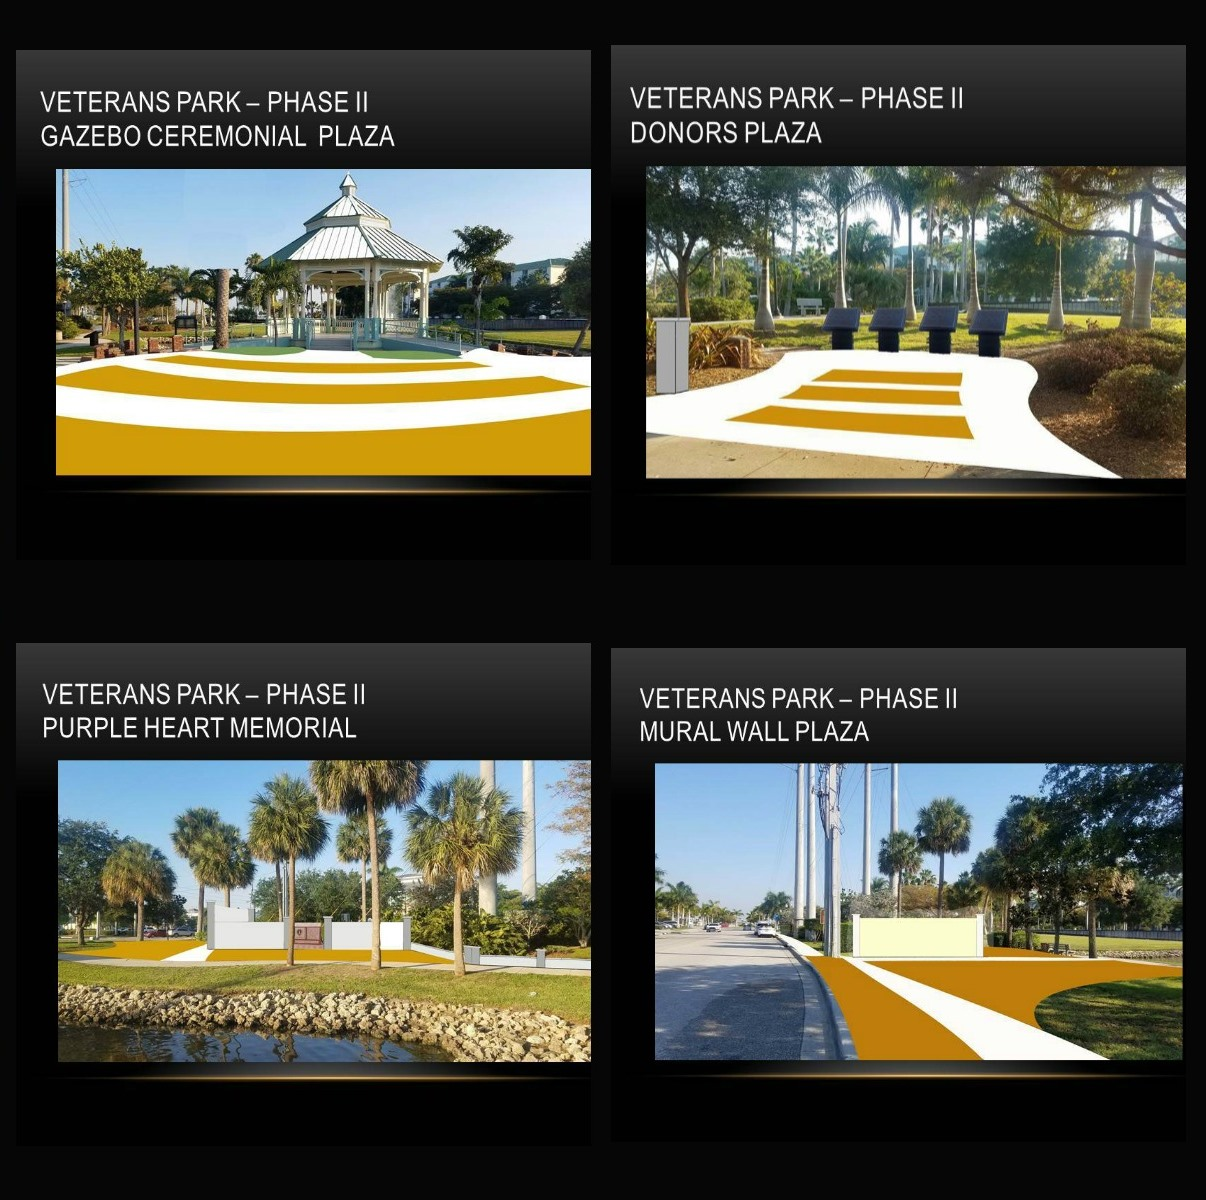 Photos Of Verterans Park -Phase II Gazebo, Donors Plaza, Purple Heart Memorial, Mural Wall Plaza